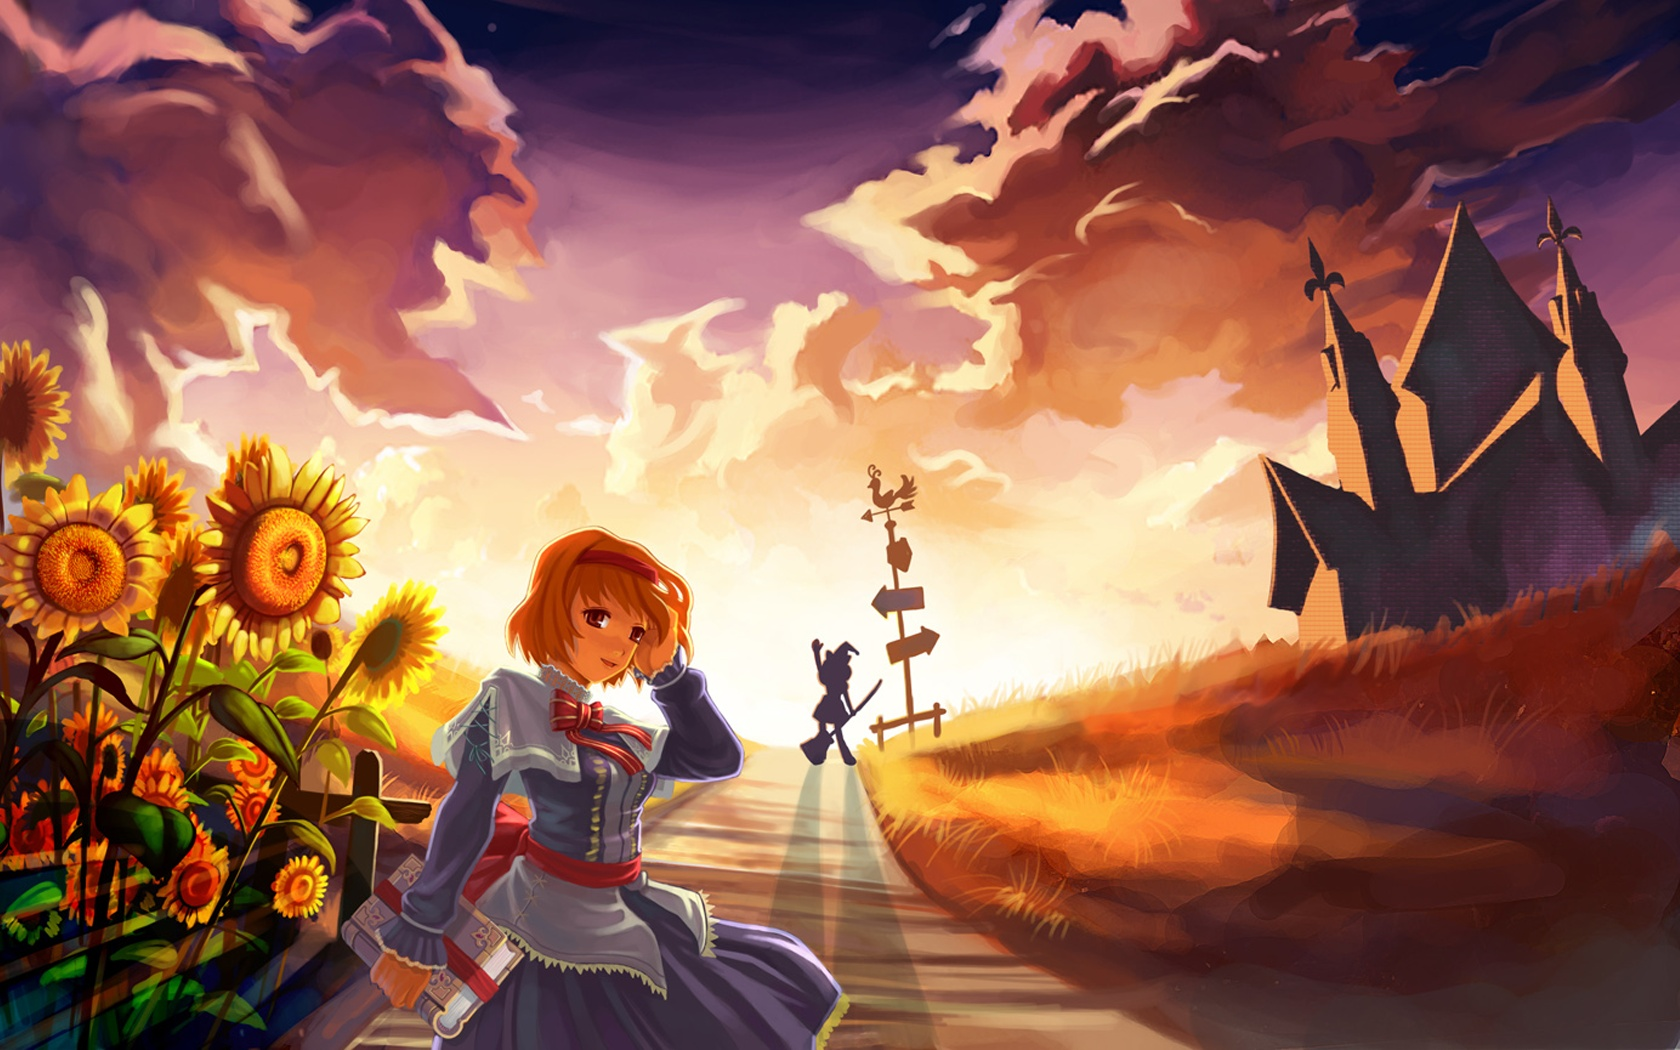 alice_margatroid blonde_hair book dress flowers grass hat kirisame_marisa red_eyes ribbons short_hair silhouette sky sunflower sunset touhou witch